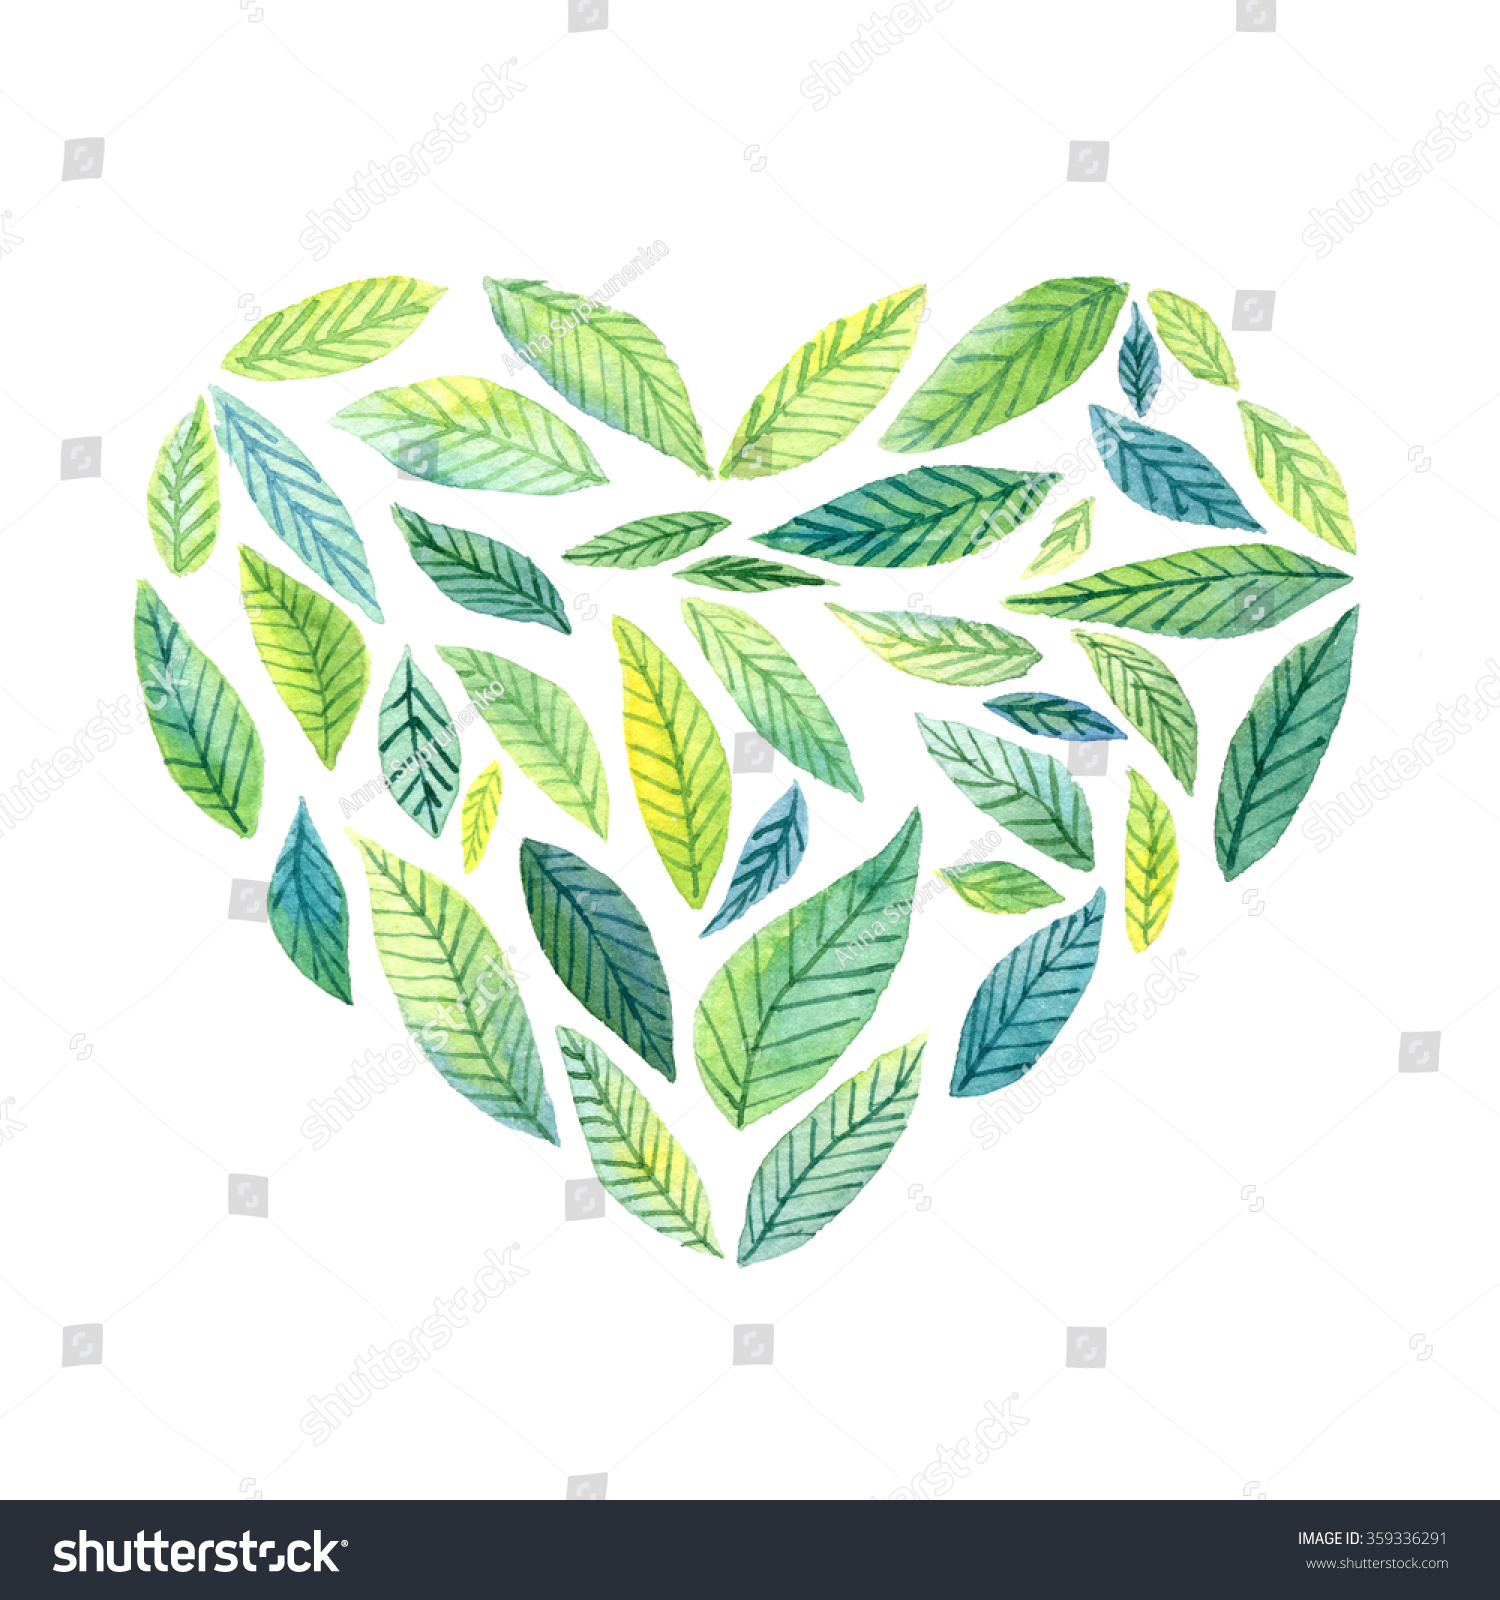 Hand Drawn Heart Green Leaves Watercolor Stock Illustration ...